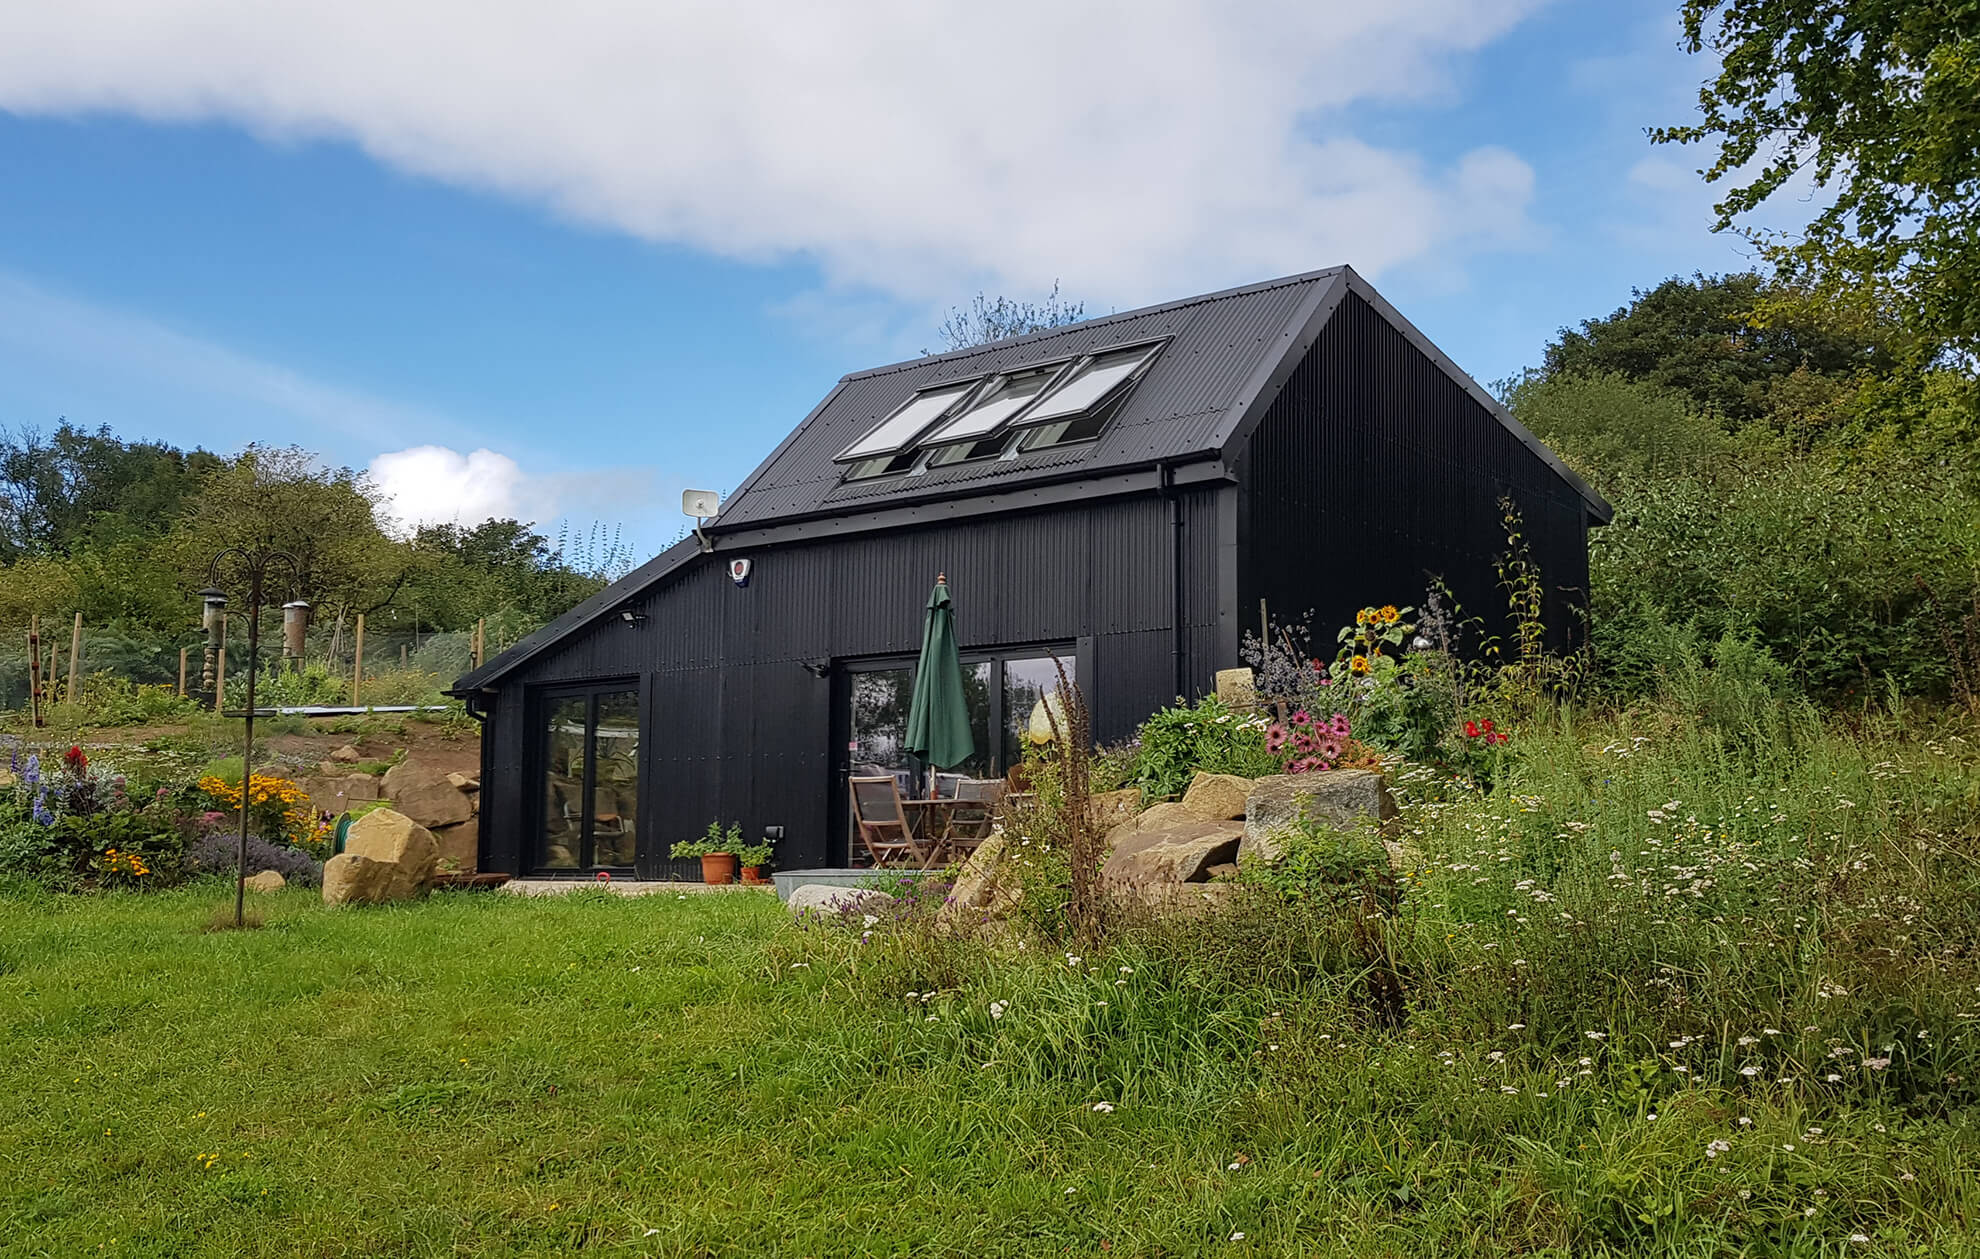 Cladco Corrugated Roofing Sheets In Black Give This Build Both Symmetry and Beauty